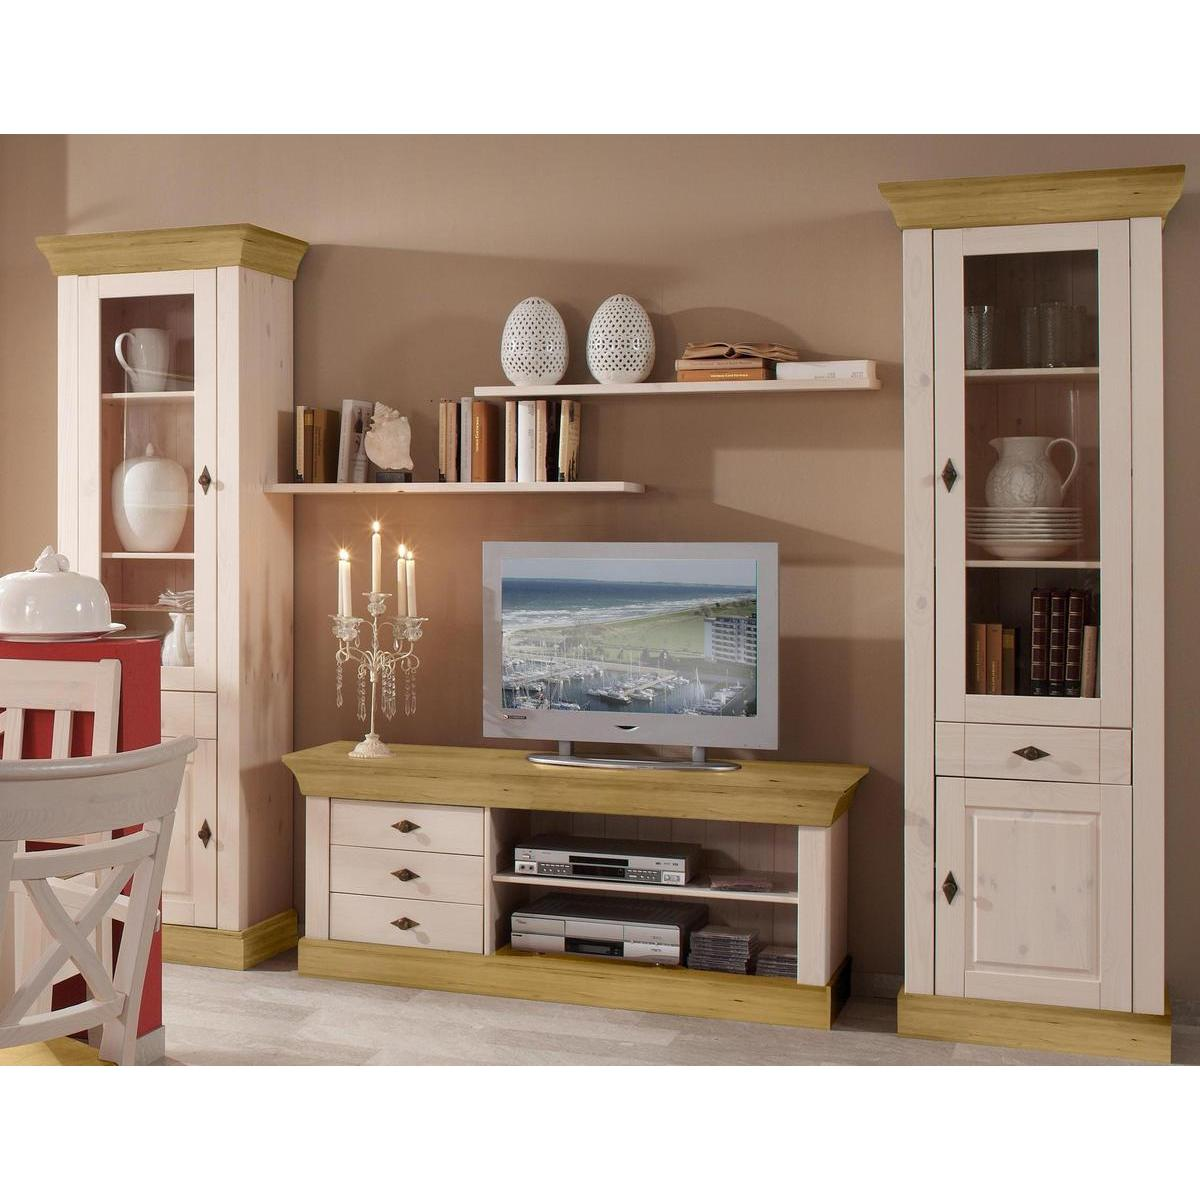 landhaus tv lowboard kiefer 2 farbig wei gebeizt ge lt bergen. Black Bedroom Furniture Sets. Home Design Ideas